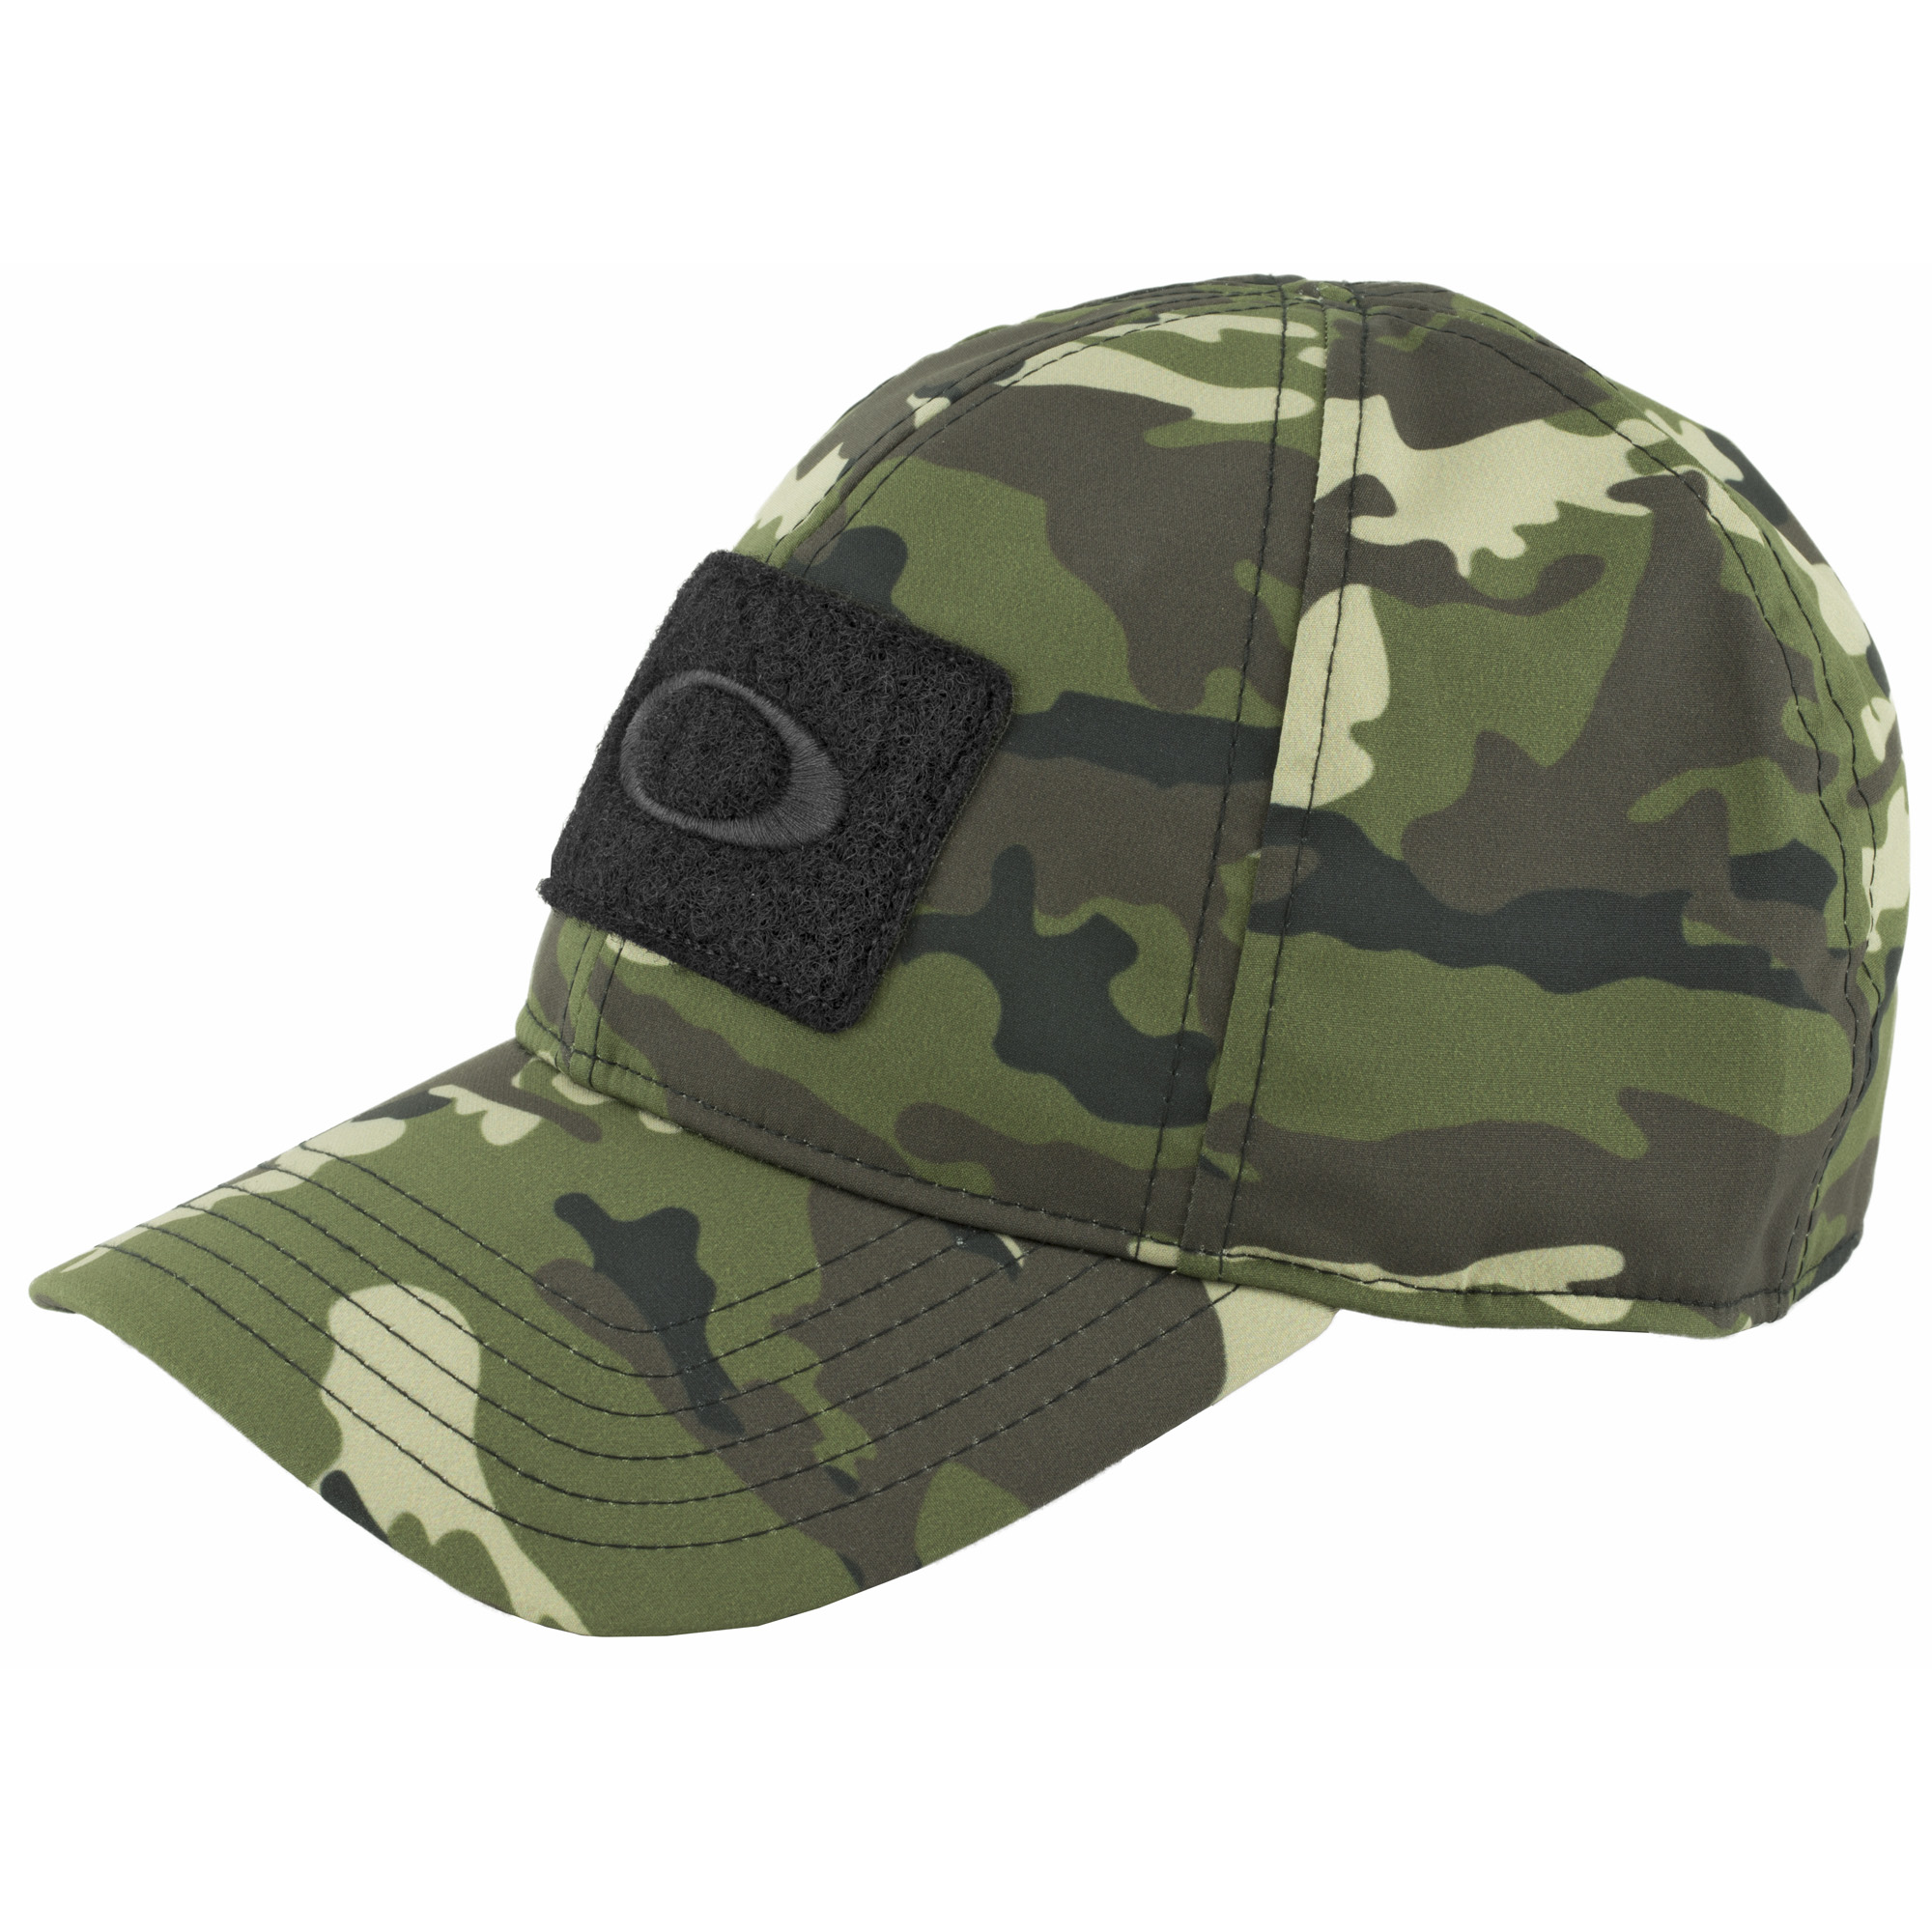 Stretch Fit Cap with hook and loop patch and embroidery at center front. 100% Polyester.